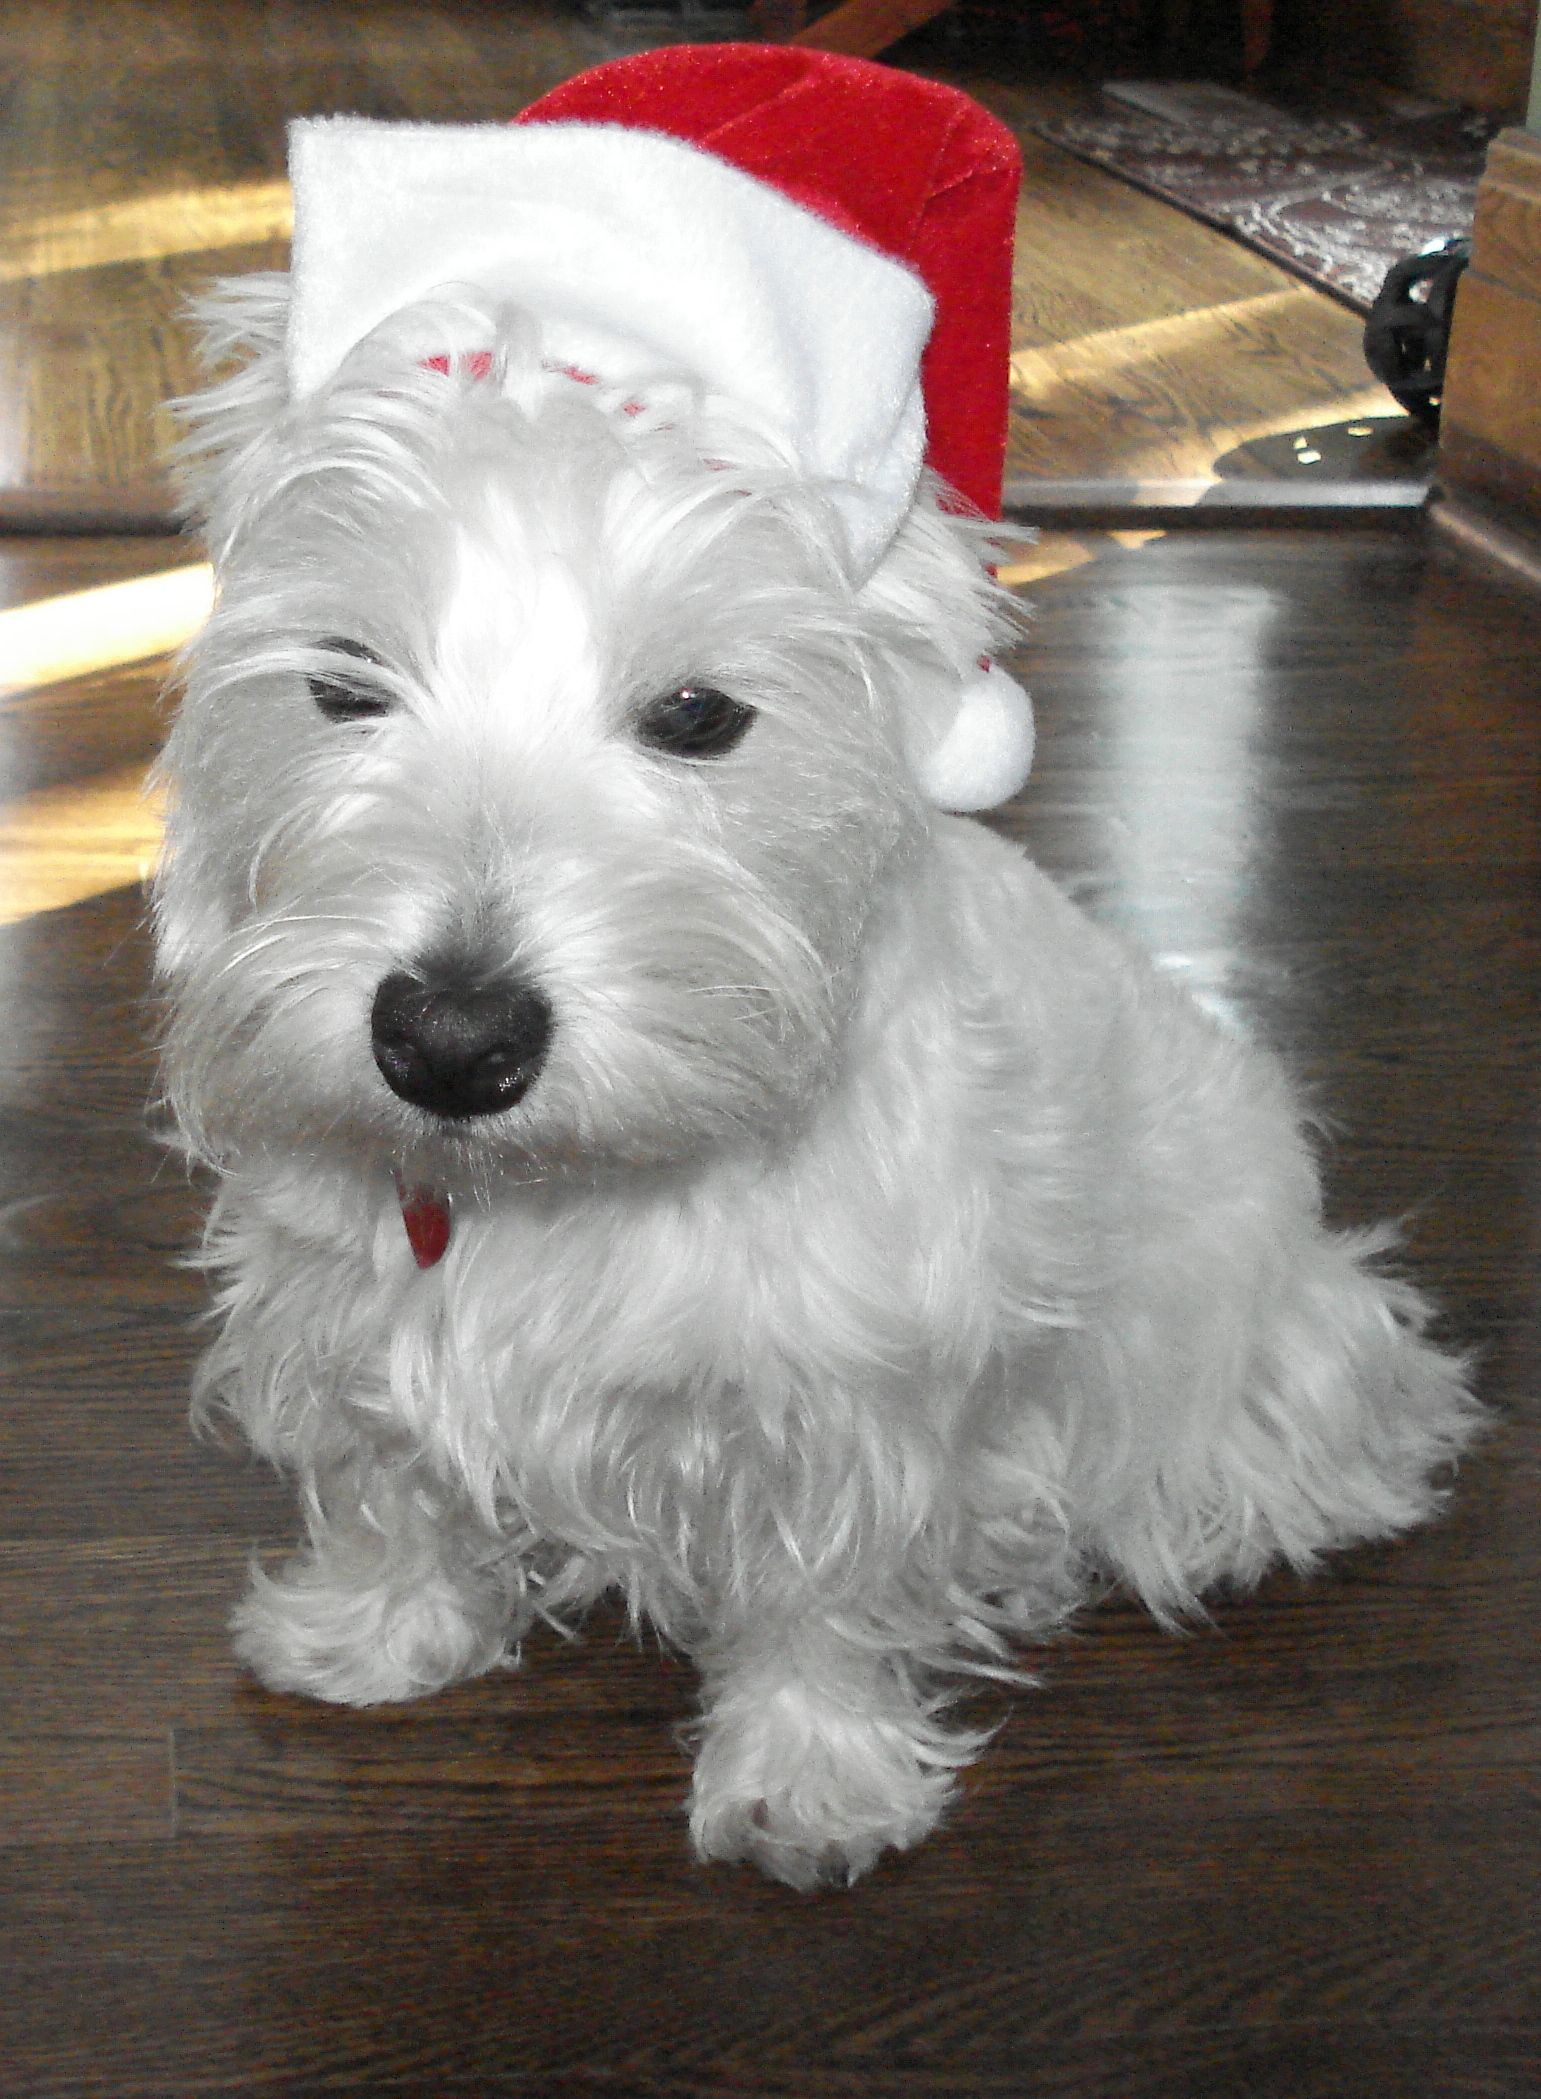 Hab A Bery Zaidie Chwismus Eberypup An People Westies West Highland White Terrier